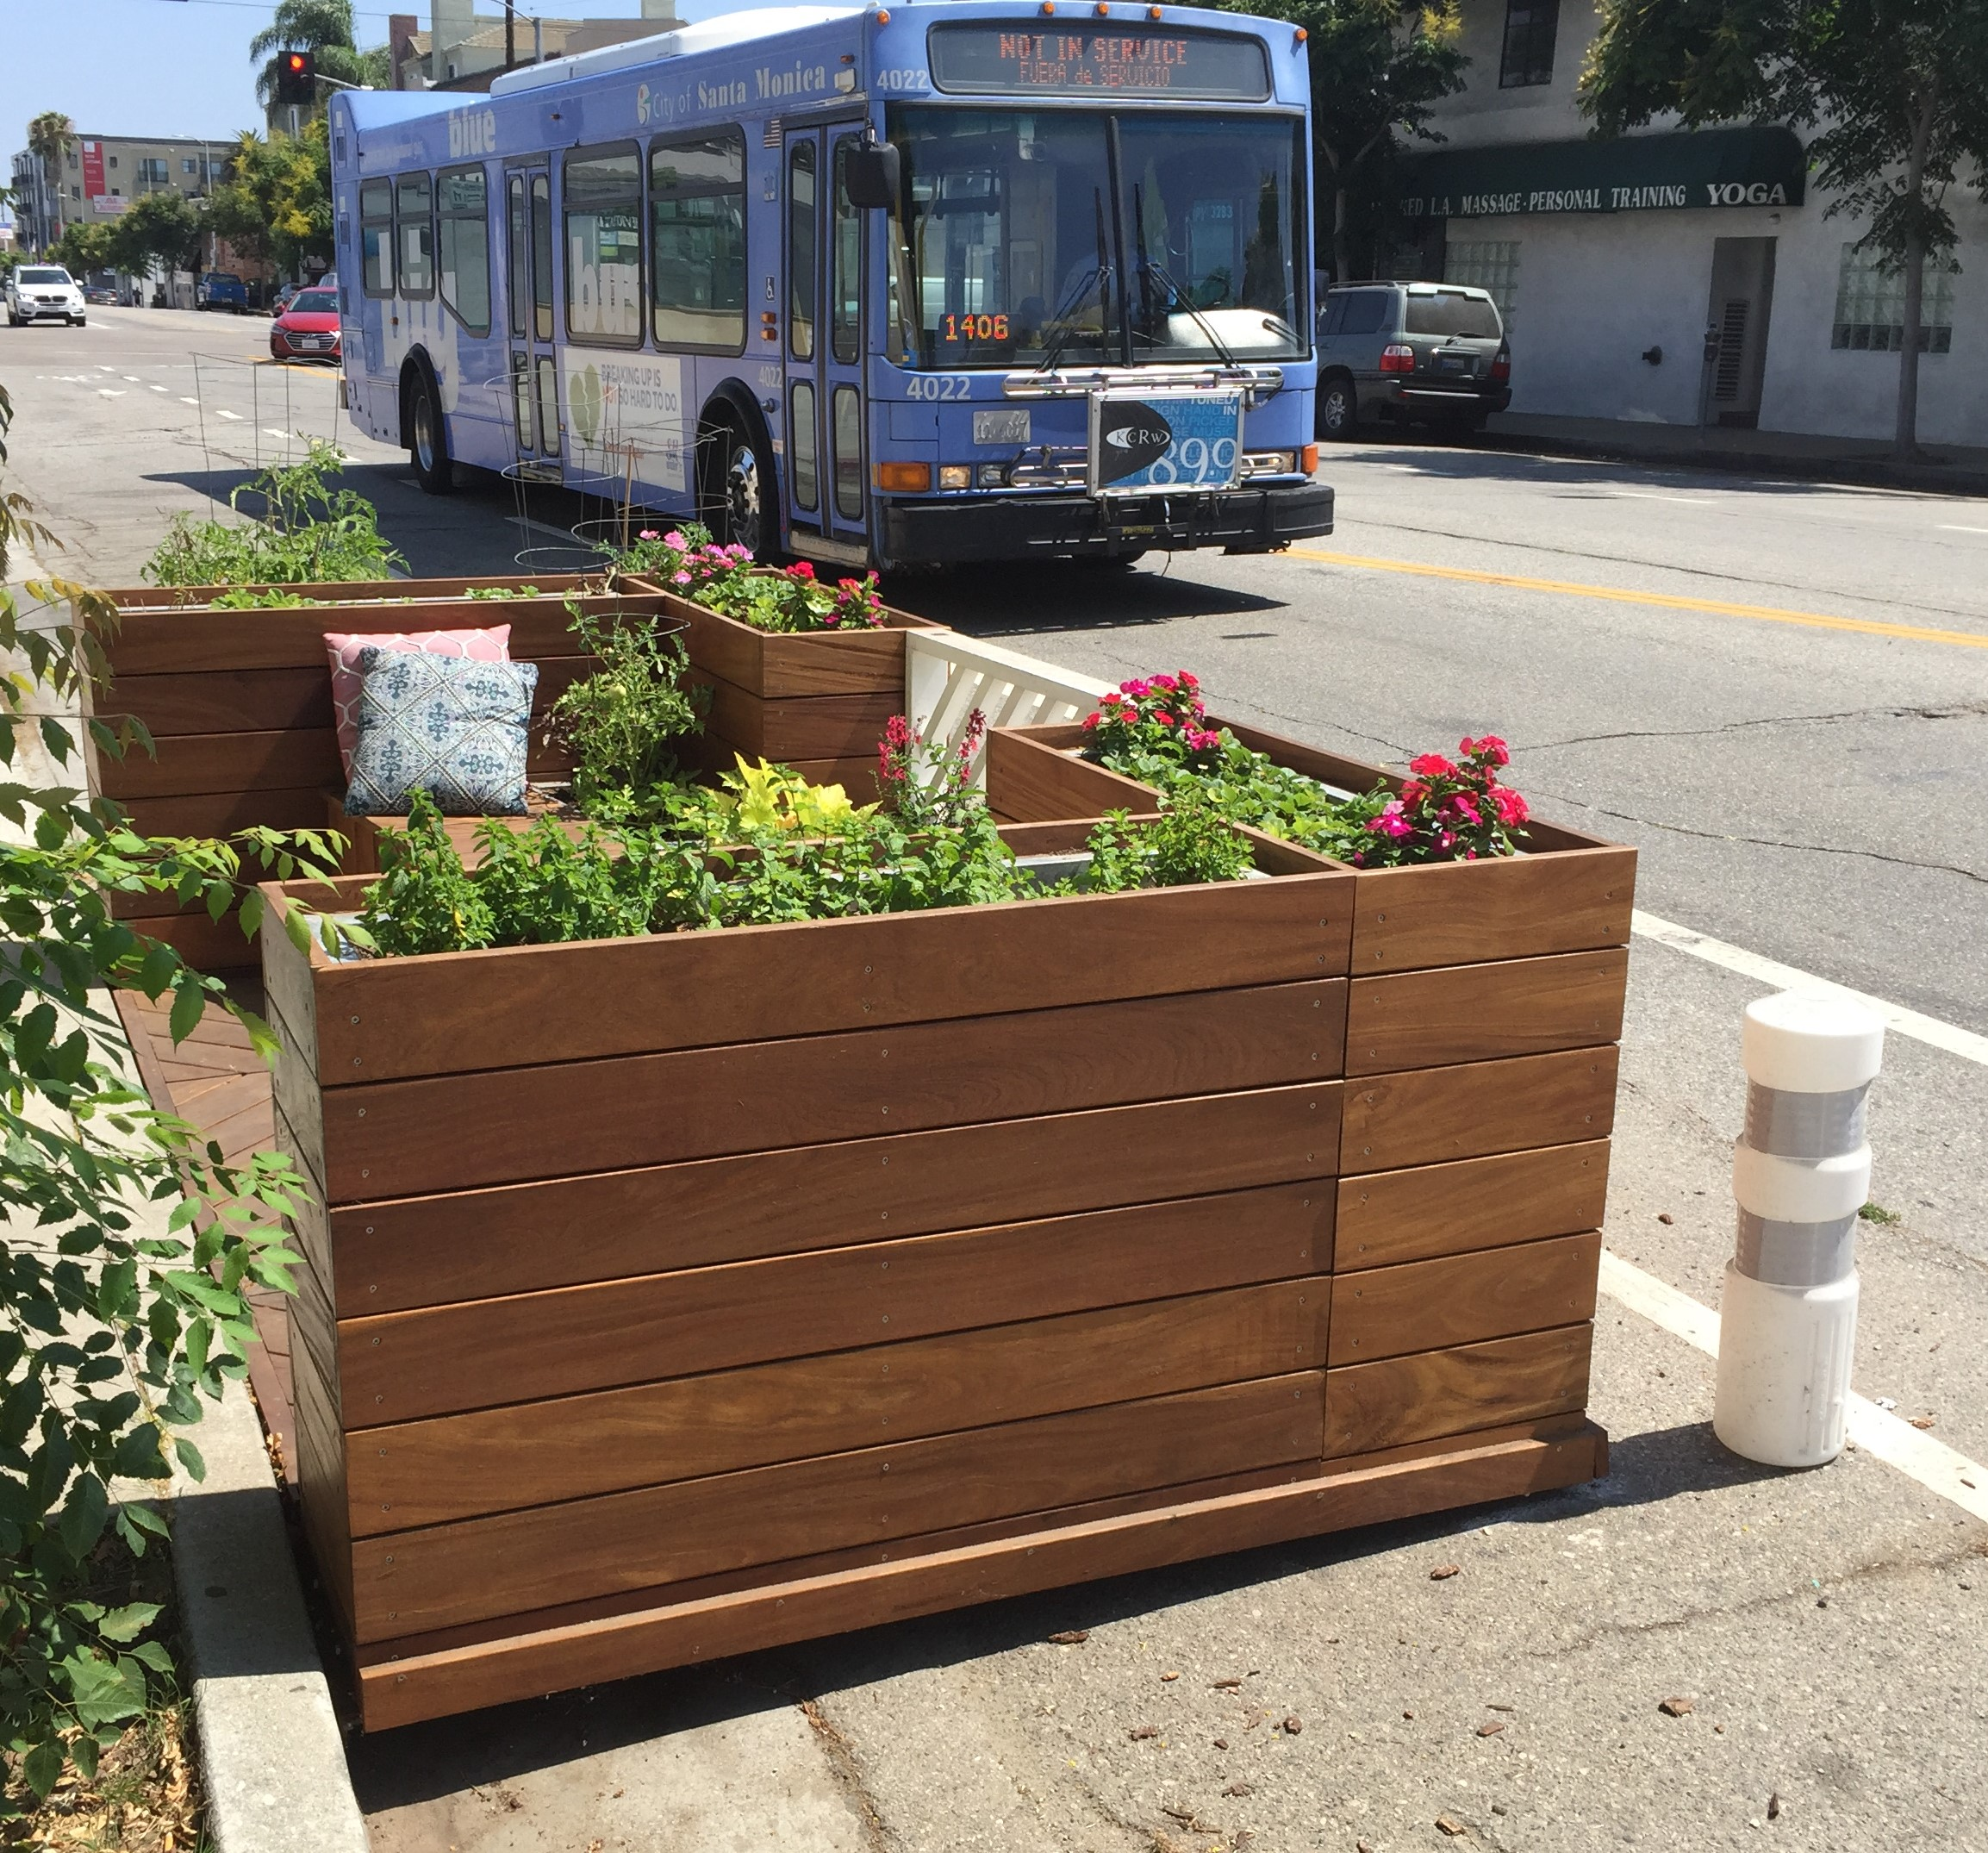 Motor Avenue celebrates two new parklets this week. Photos: Joe Linton/Streetsblog L.A.